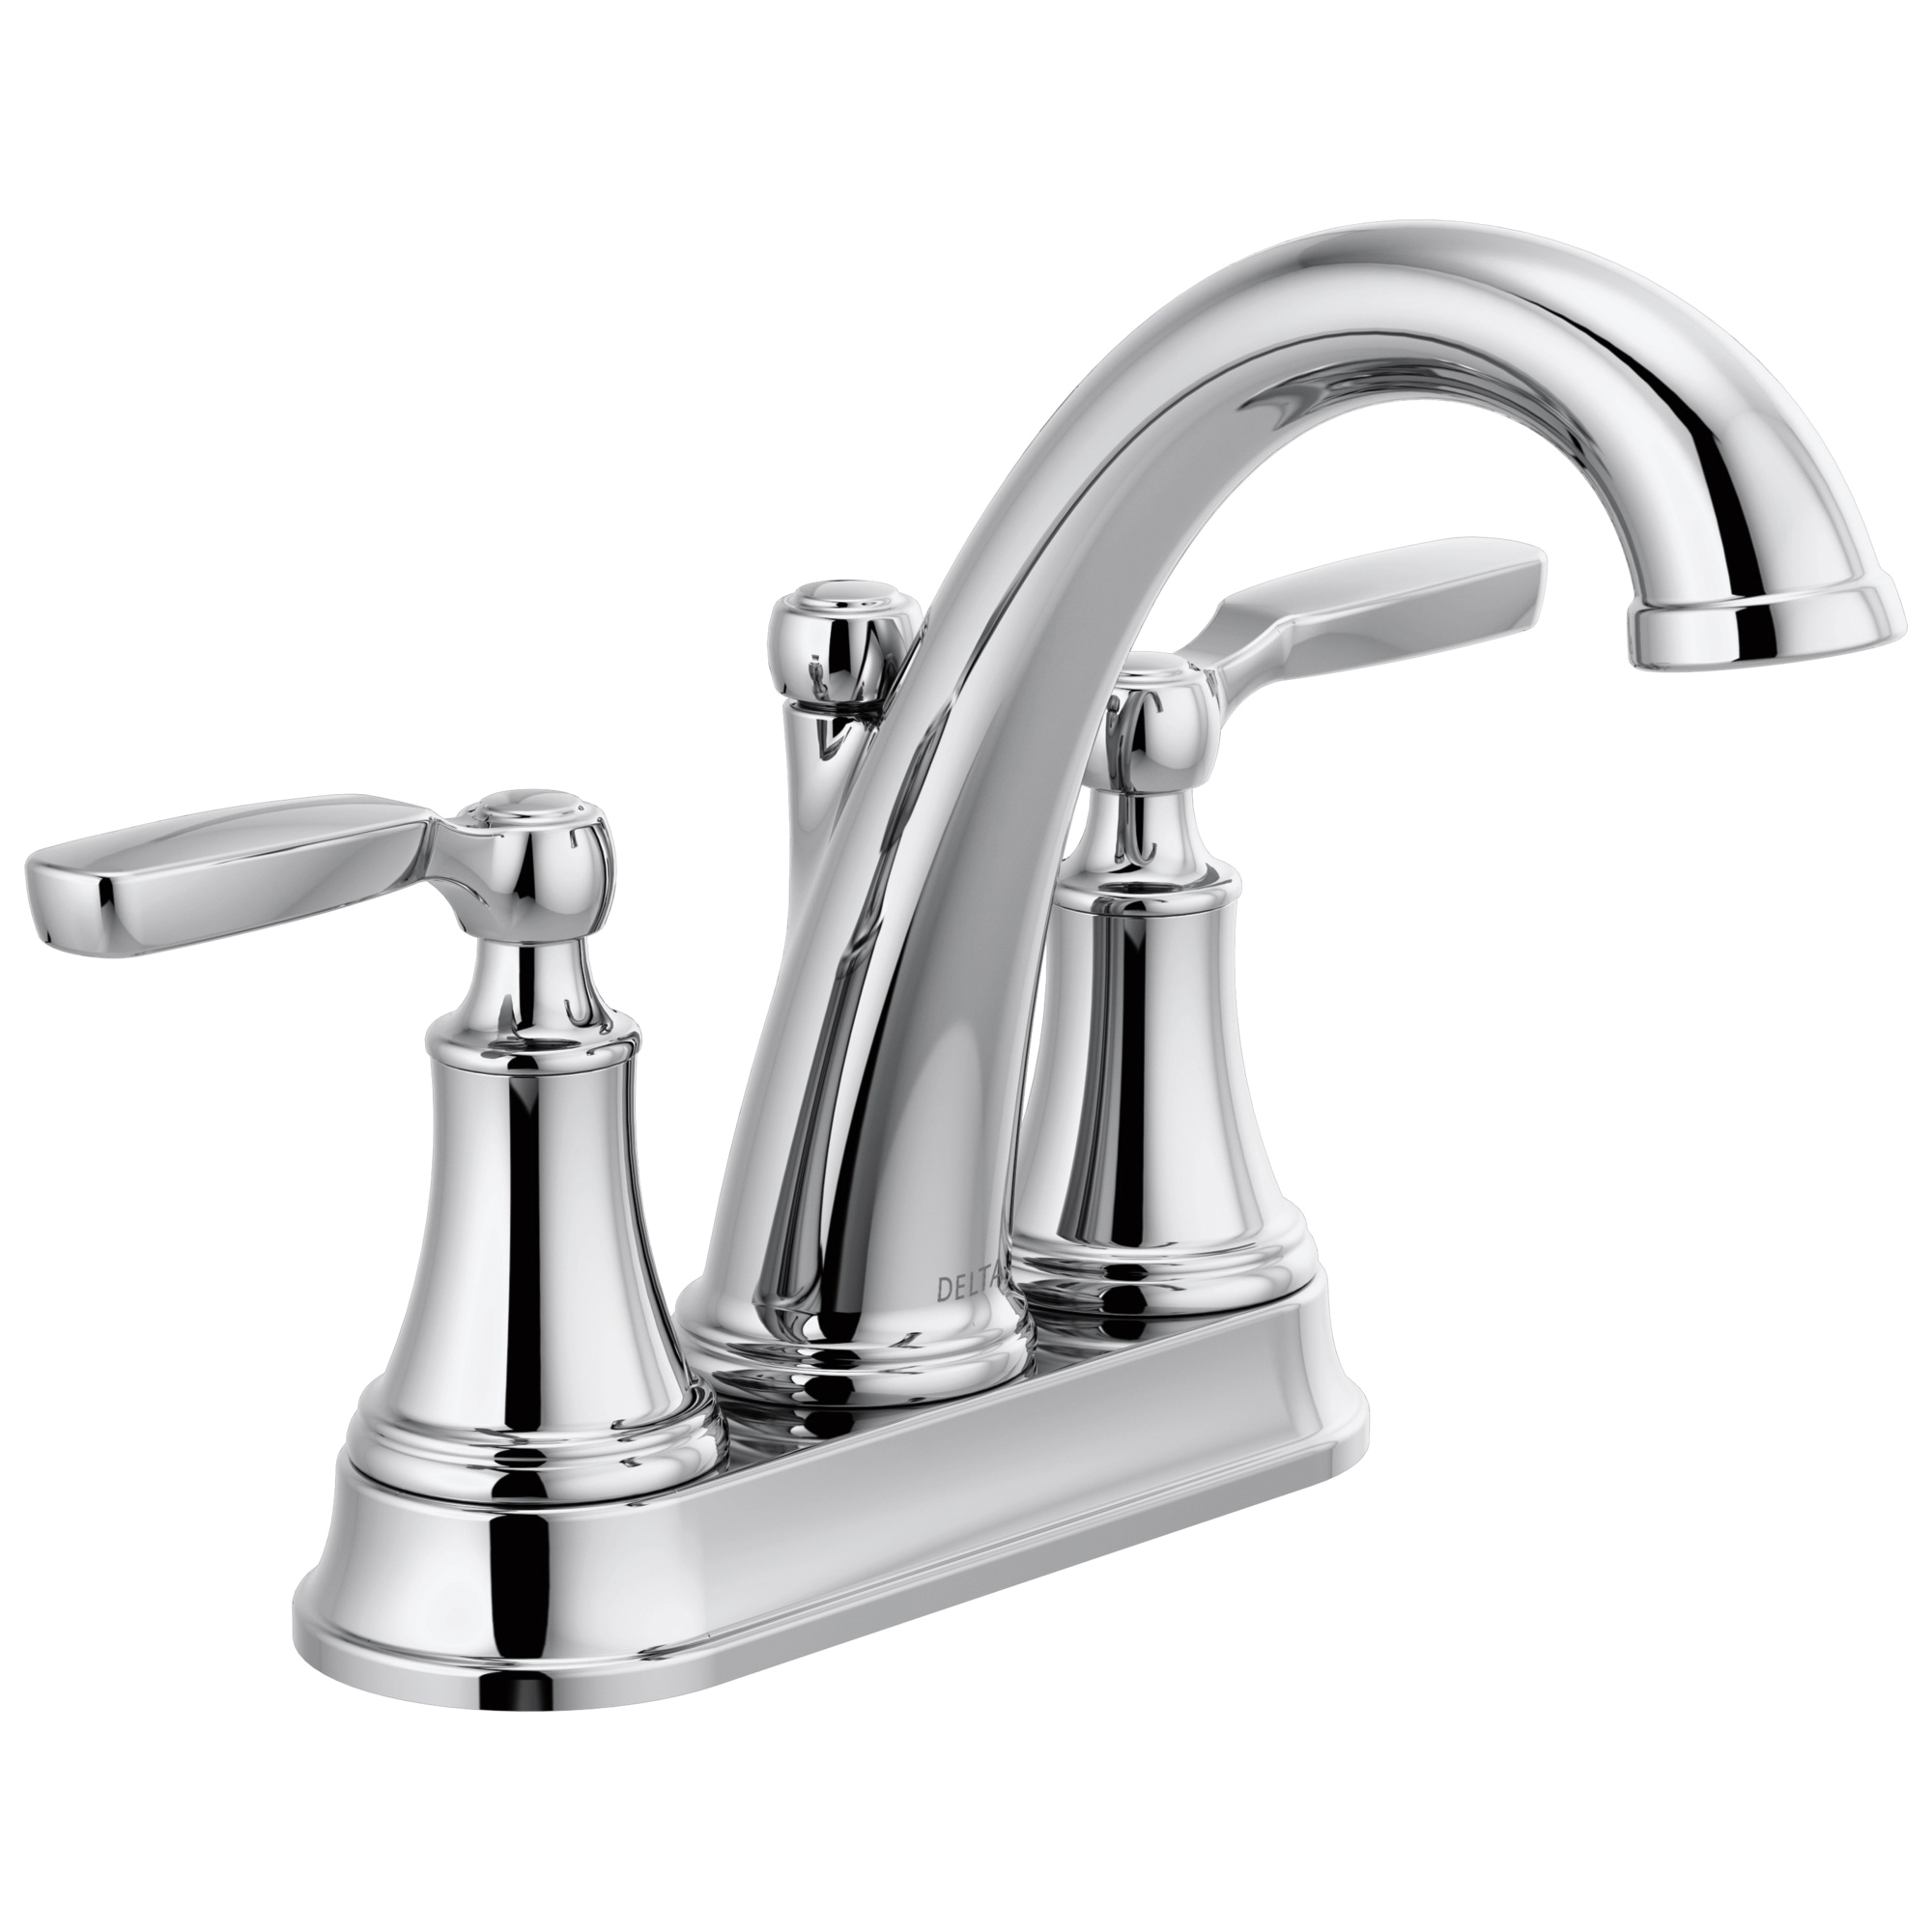 DELTA® 2532LF-TP Bathroom Faucet, Woodhurst™, Chrome Plated, 2 Handles, 50/50 Pop-Up Drain, 1.2 gpm